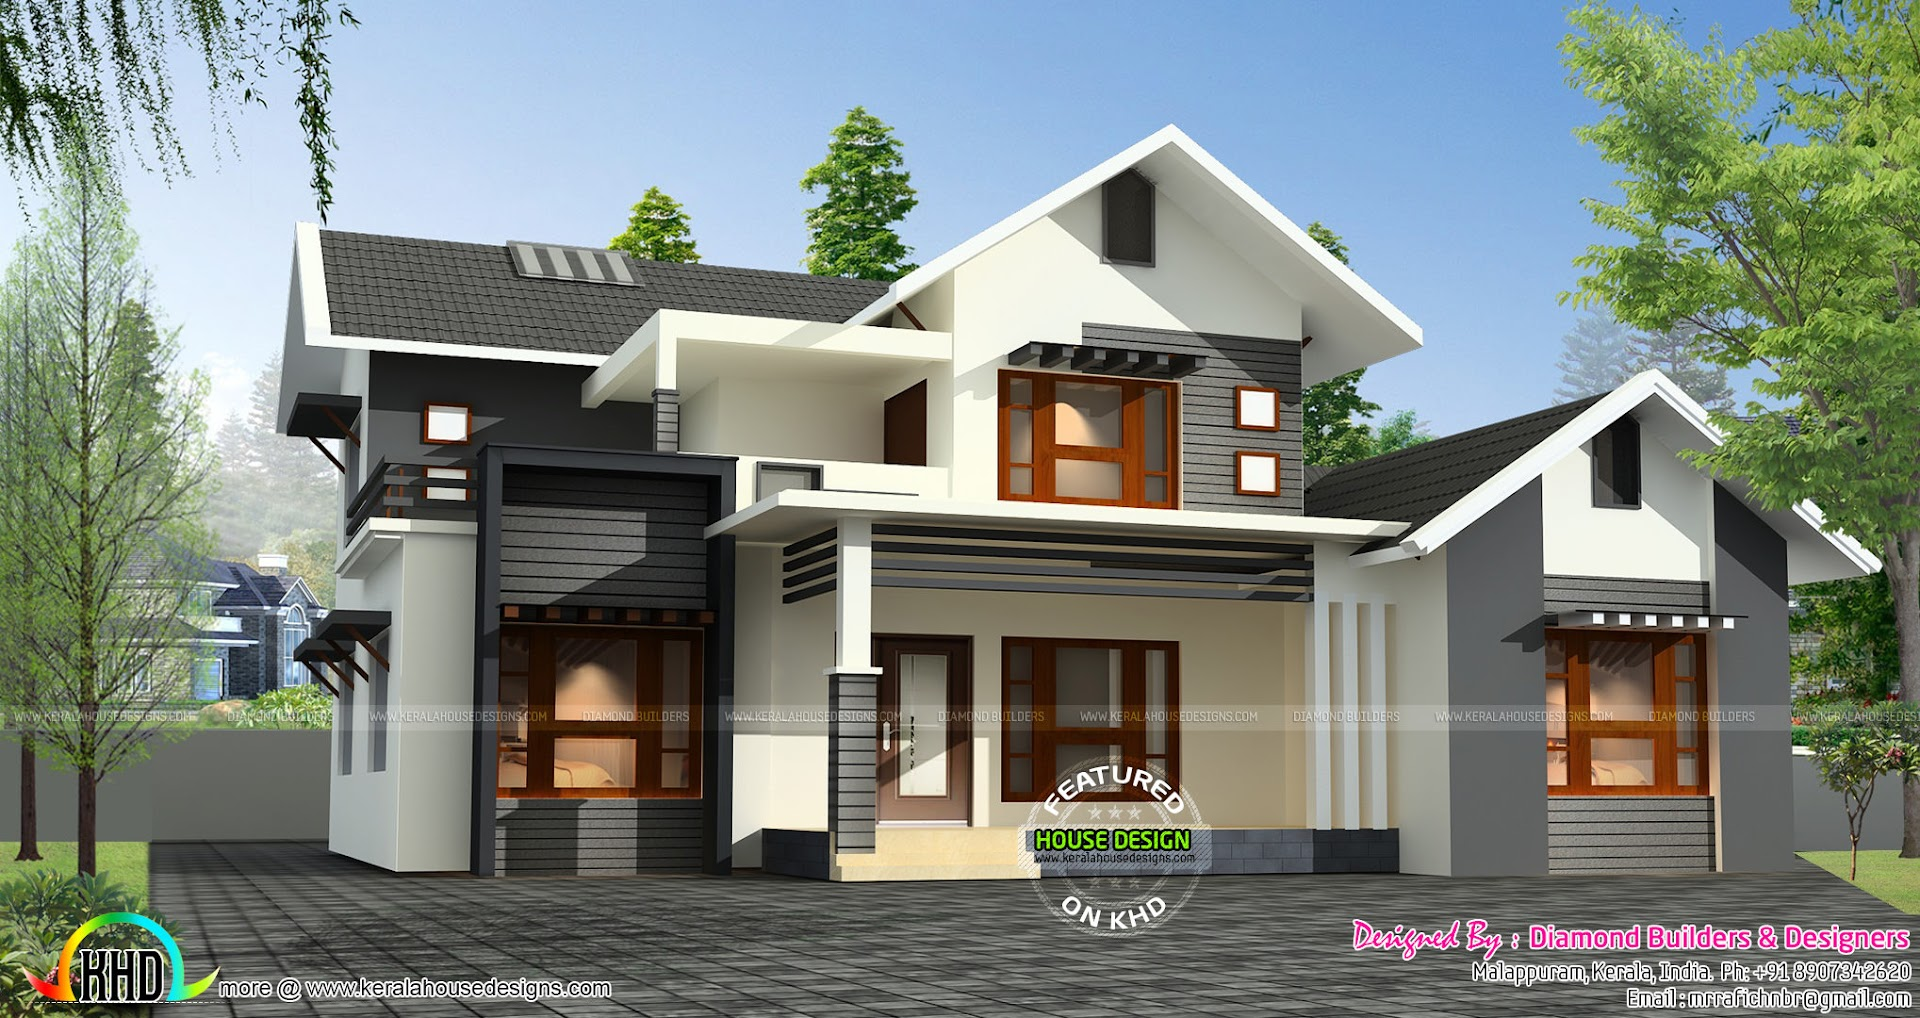 Sloping roof mix 1500 sq ft home kerala home design and for 1500 sq ft house plans kerala